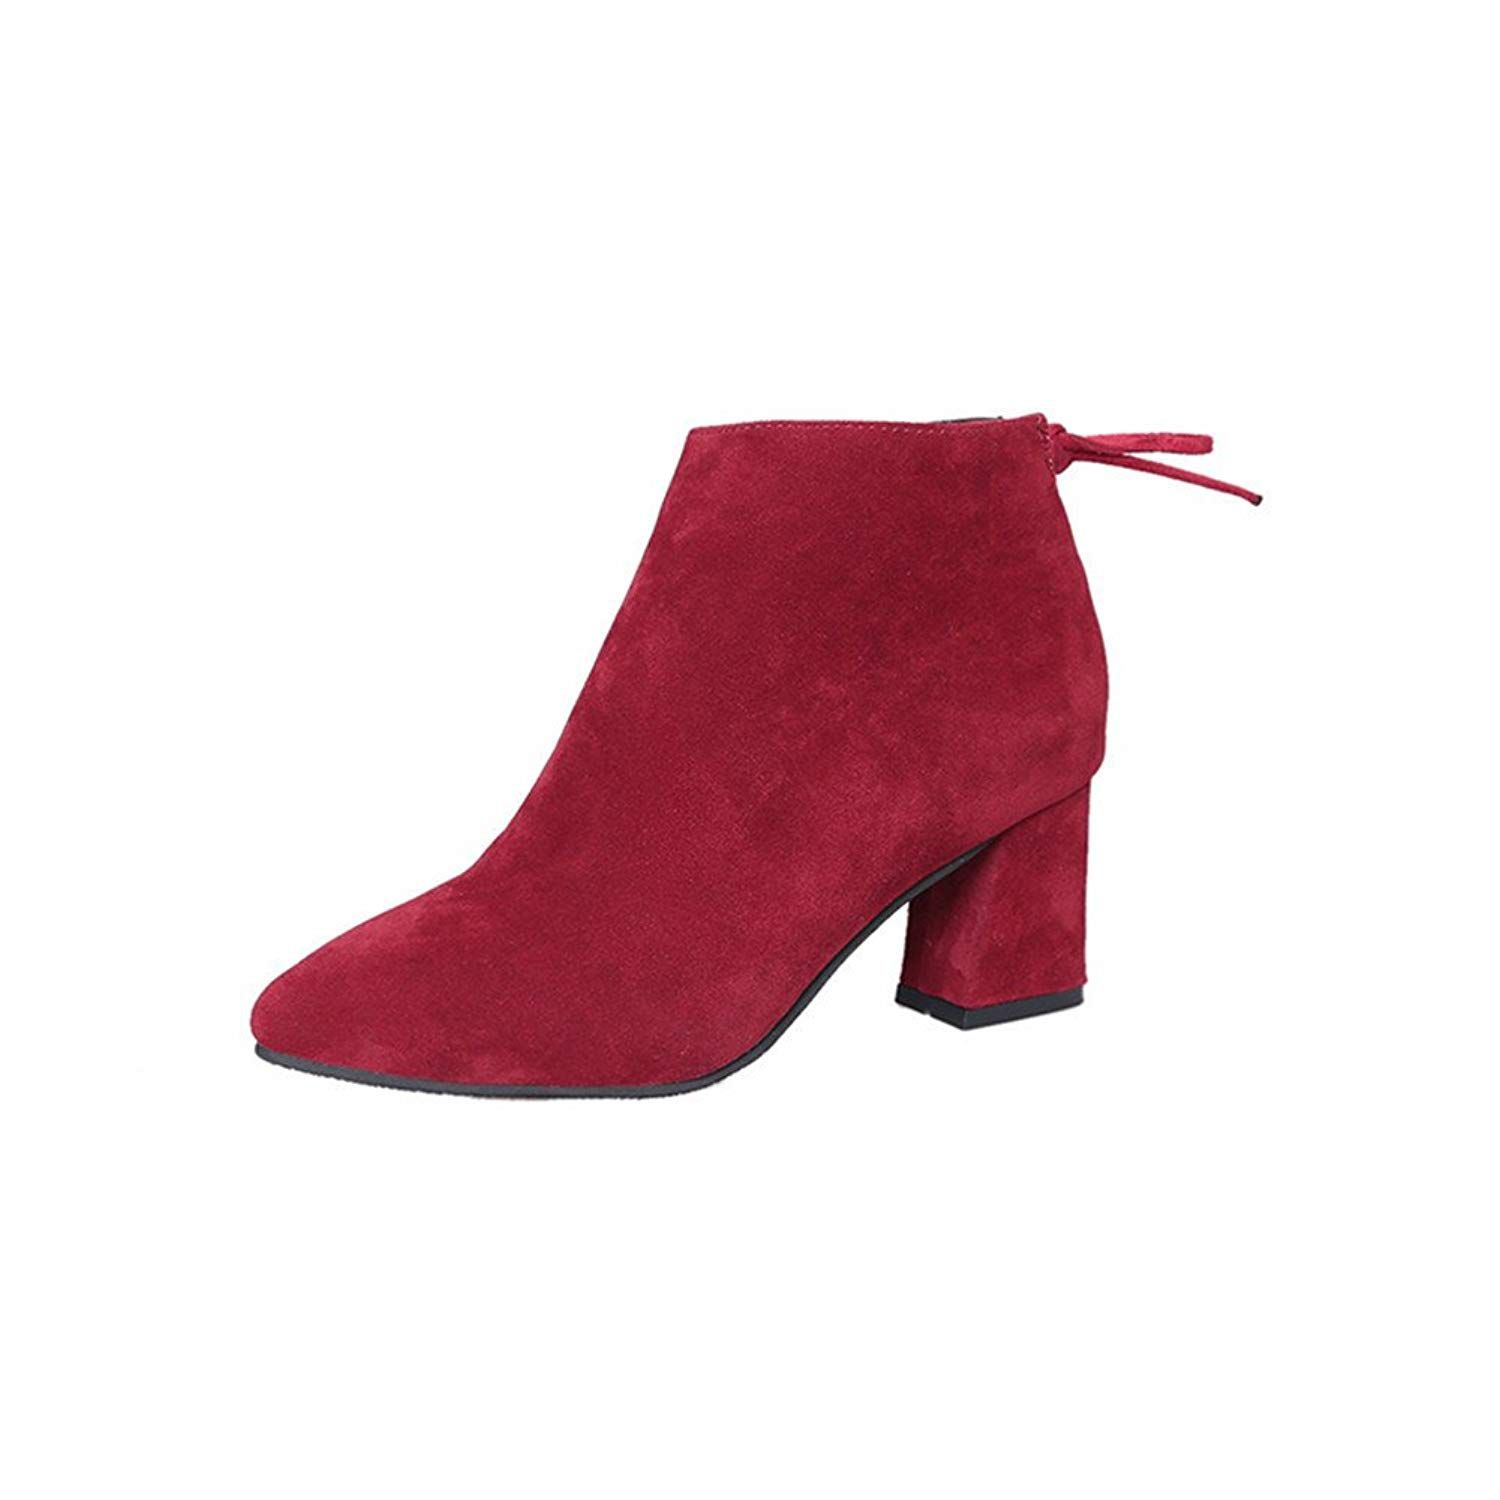 7fc51e929a7ca Women s Casual Ankle Booties Winter Cowboy Shoes Pointed Toe Low Heel  Inside Zipper Boot